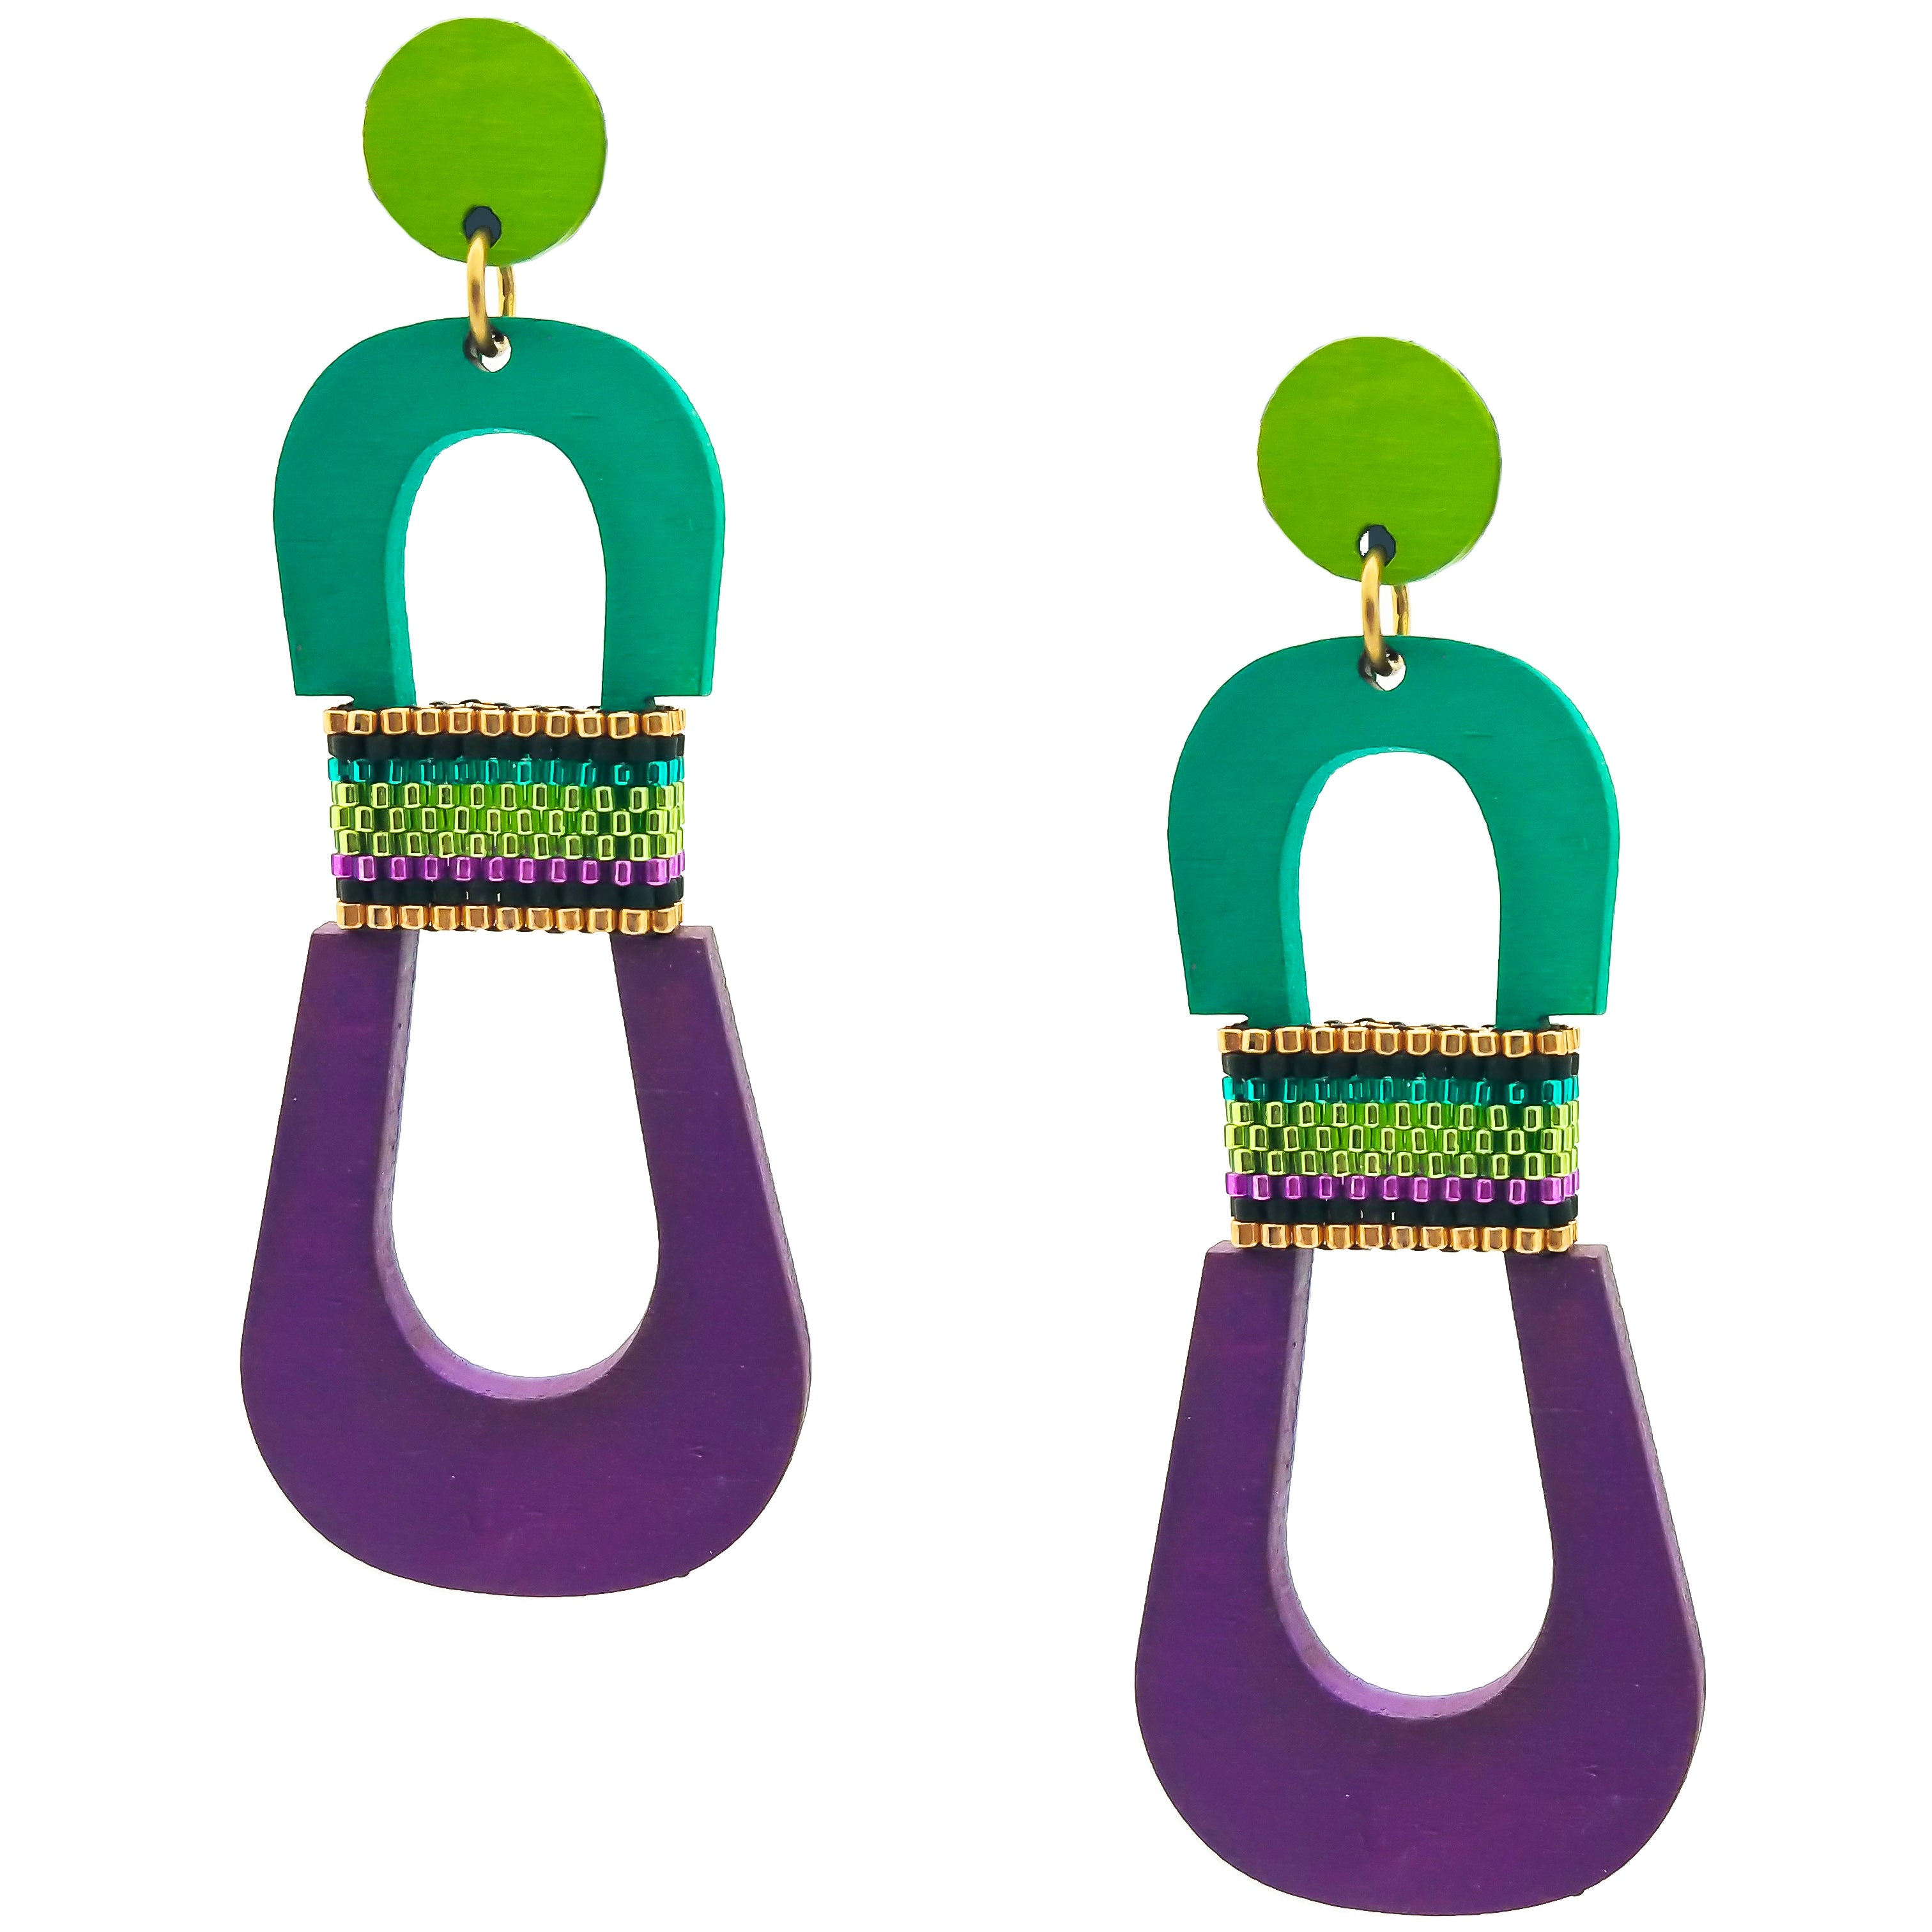 Modern, curvy, chartreuse, teal, and purple color blocked statement earrings with hand-beaded accents by the brand SCOTCHBONNET.